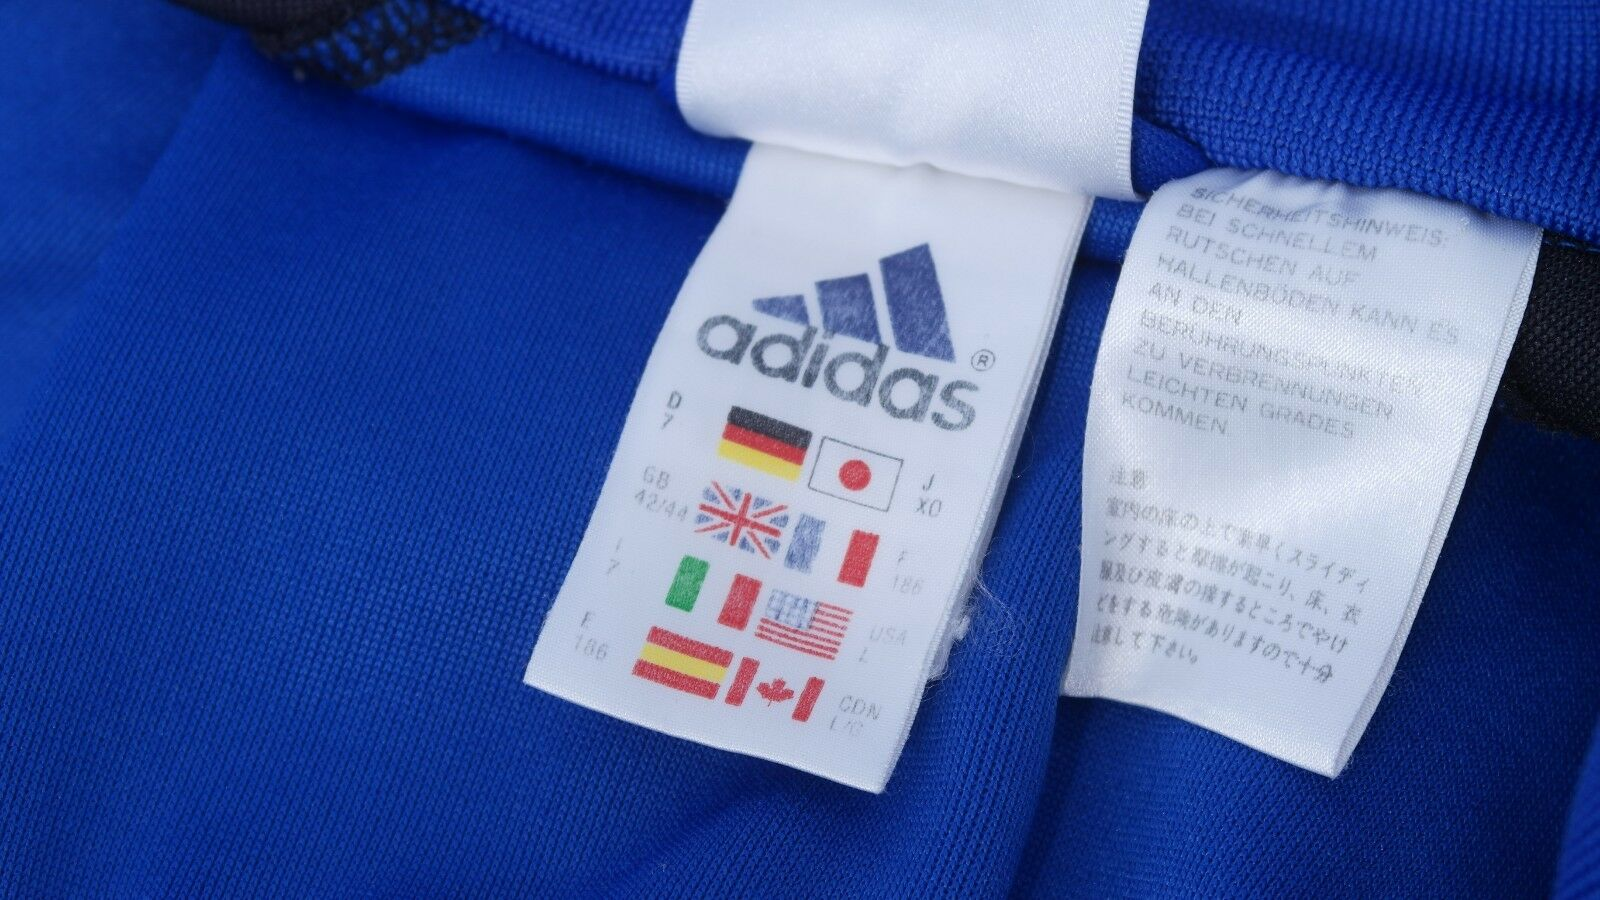 Adidas Adidas Adidas Herren Sportjacke Trainingsjacke men training jacket tracksuit top blau 63890e